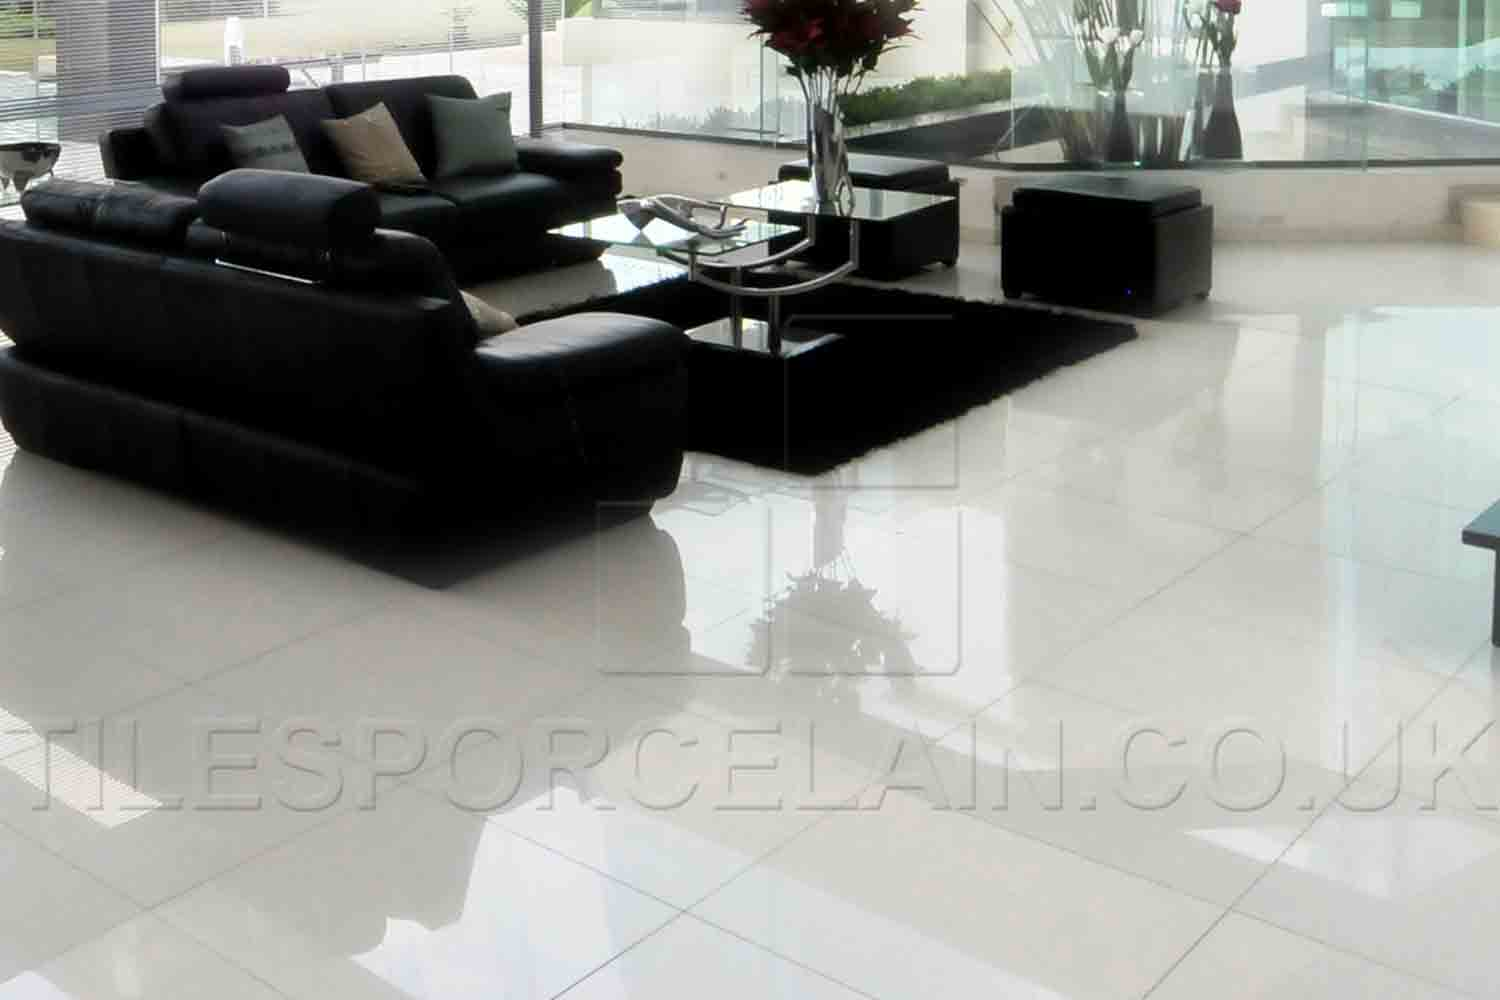 Floor Tiles Prices Interior Design Contemporary Tile Design Ideas From Around The World